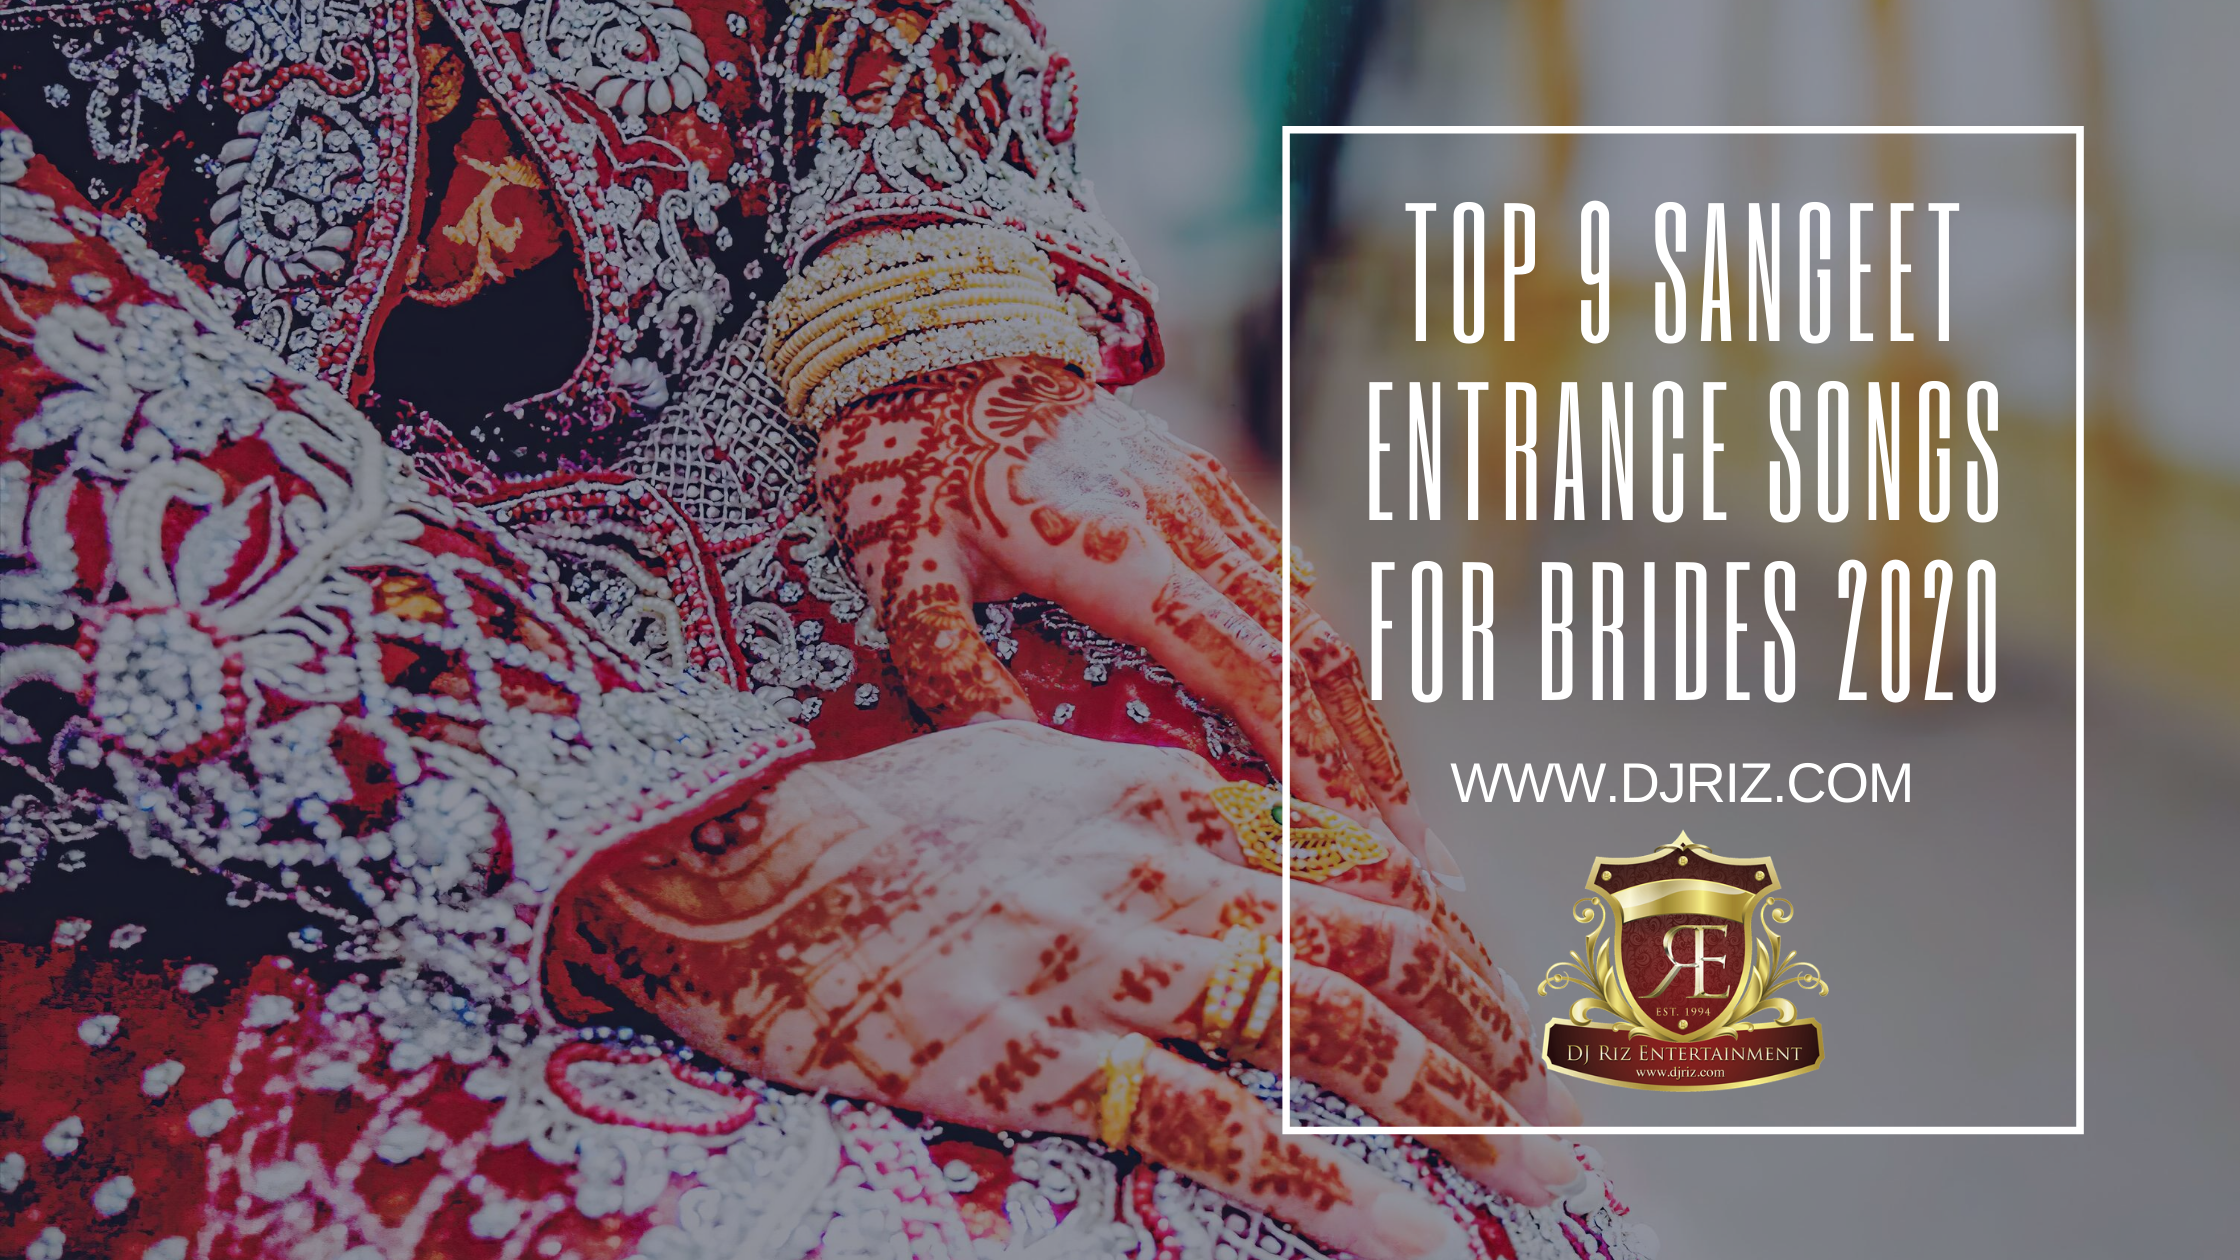 Top 9 Sangeet Entrance Songs for Brides 2020